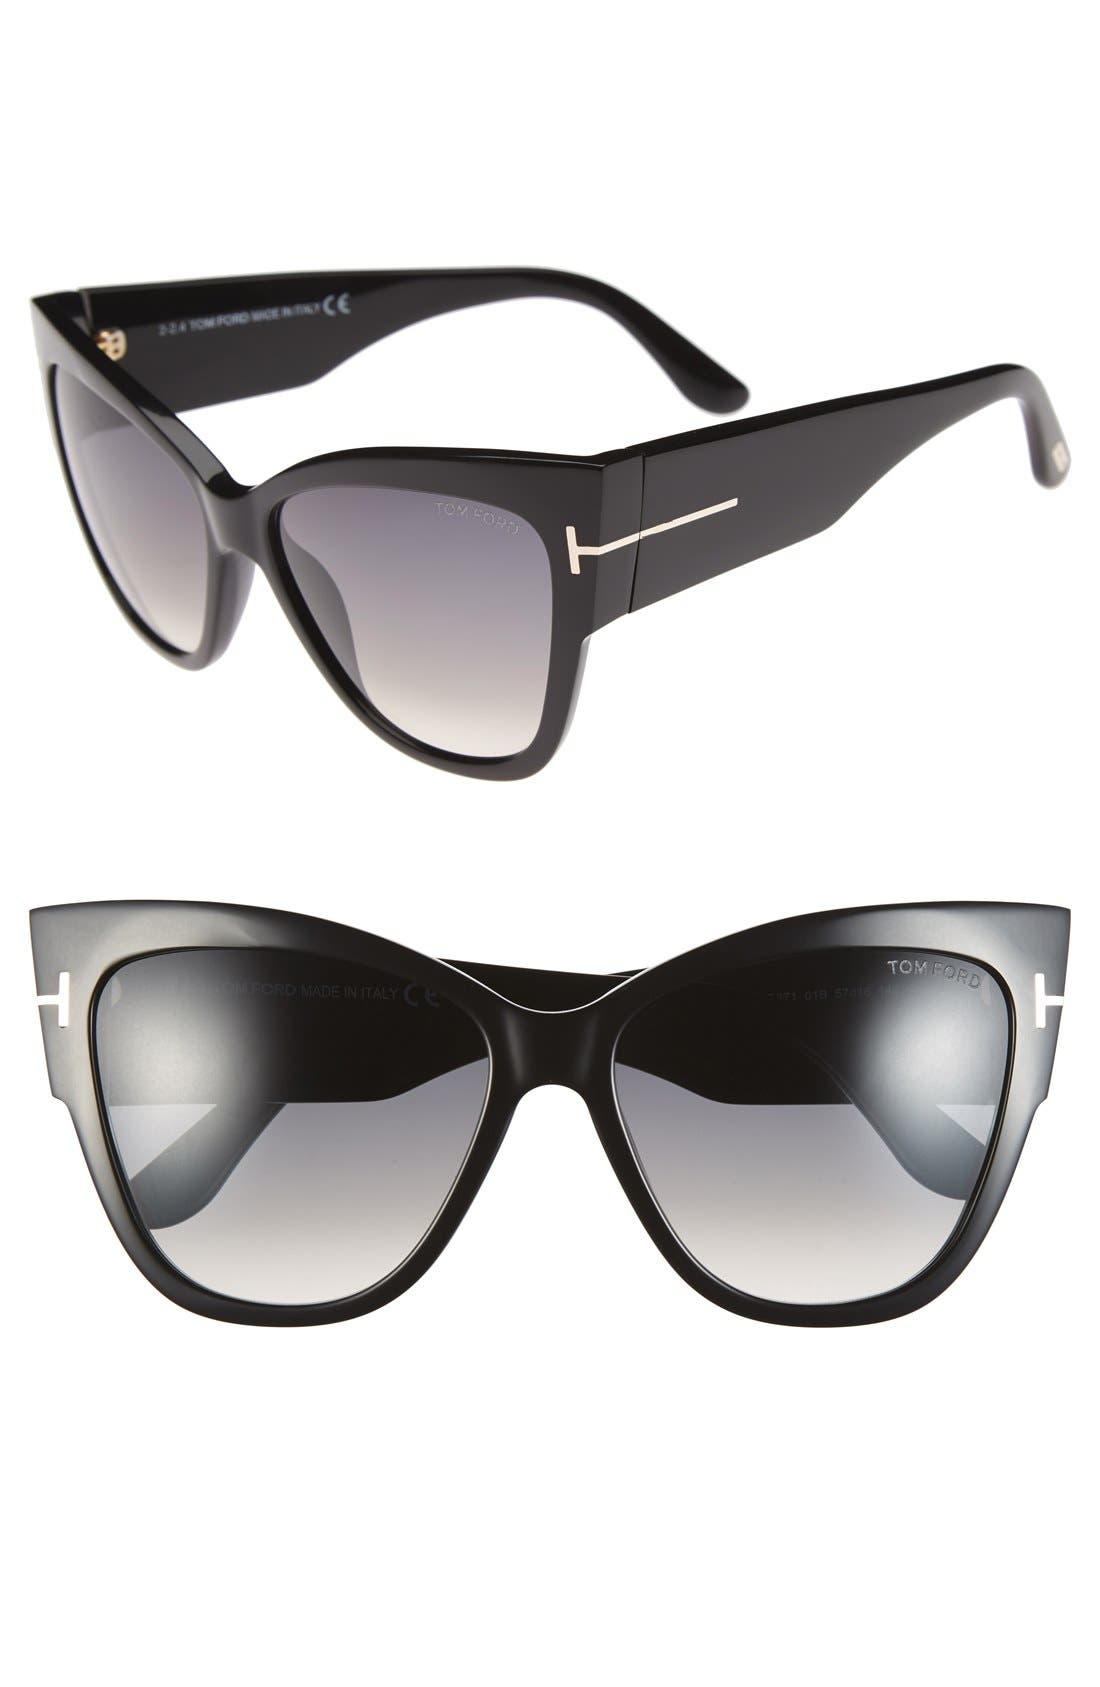 Anoushka 57Mm Special Fit Butterfly Sunglasses in Black/ Gradient Grey Lenses